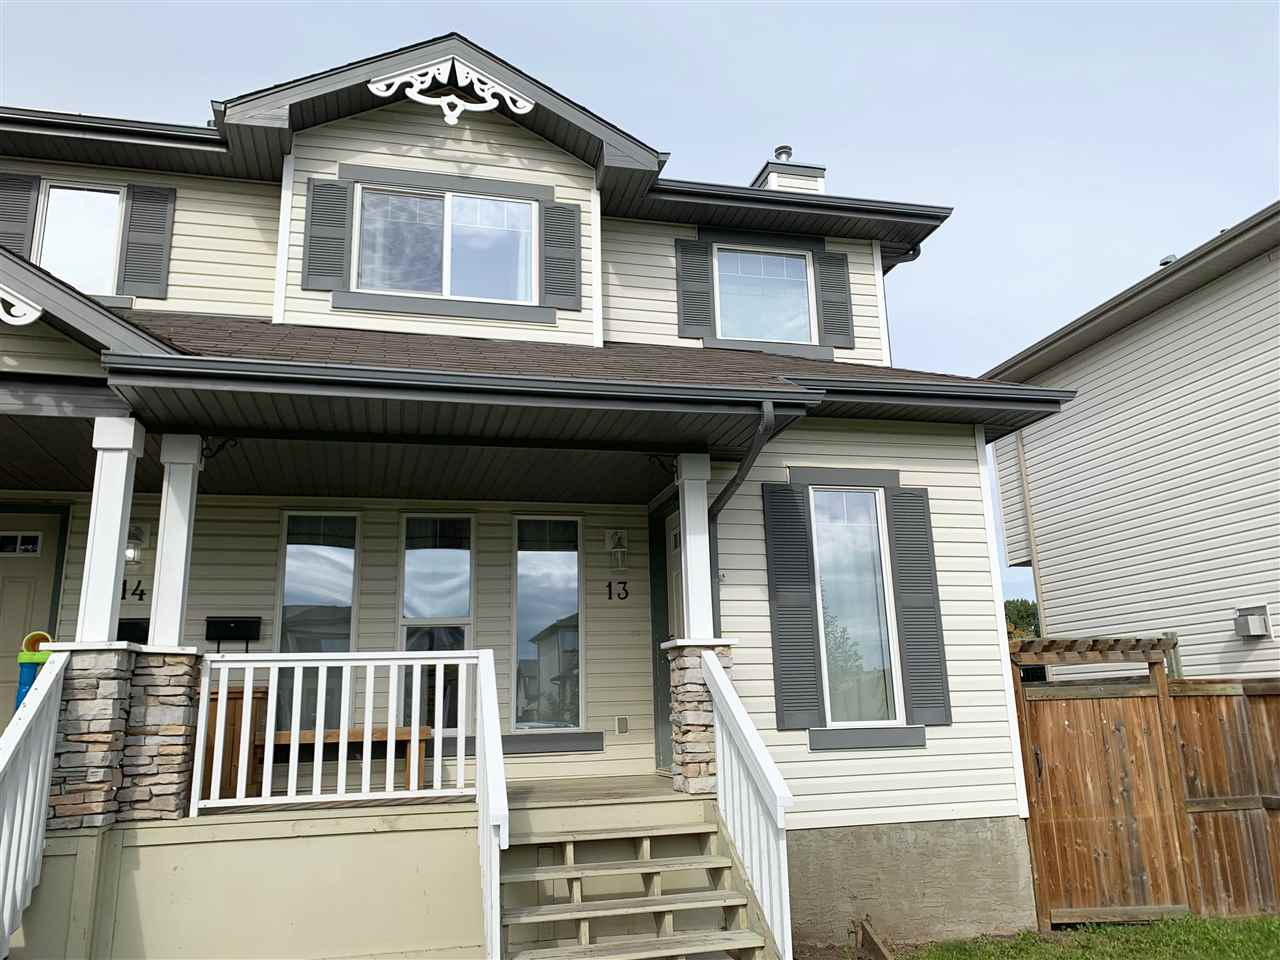 Welcome to this updated 2 storey half duplex in Southfork.  This home offers 1147 SqFt of living space including 3 bedrooms, 1.5 baths, open concept main floor, and a large landscaped yard.  Upstairs you'll find the spacious master bedroom with a walk-in closet, 2 additional bedrooms and a 4 piece bath.  The main floor features a beautiful kitchen that overlooks the backyard, all black appliances, and plenty of counter space. The open concept leads into the dining room and large living space with a corner gas fireplace, and a 2 piece bath completing the main floor. Back lane access for parking large enough to fit 2 trucks, as well as plenty of street parking, and overall great curb appeal. Upgrades include all new paint throughout, new vinyl plank flooring and brand new carpet.  Great value and location close to parks, schools, shopping, public transit and easy access to Highway 2, this is a perfect turn key starter home!